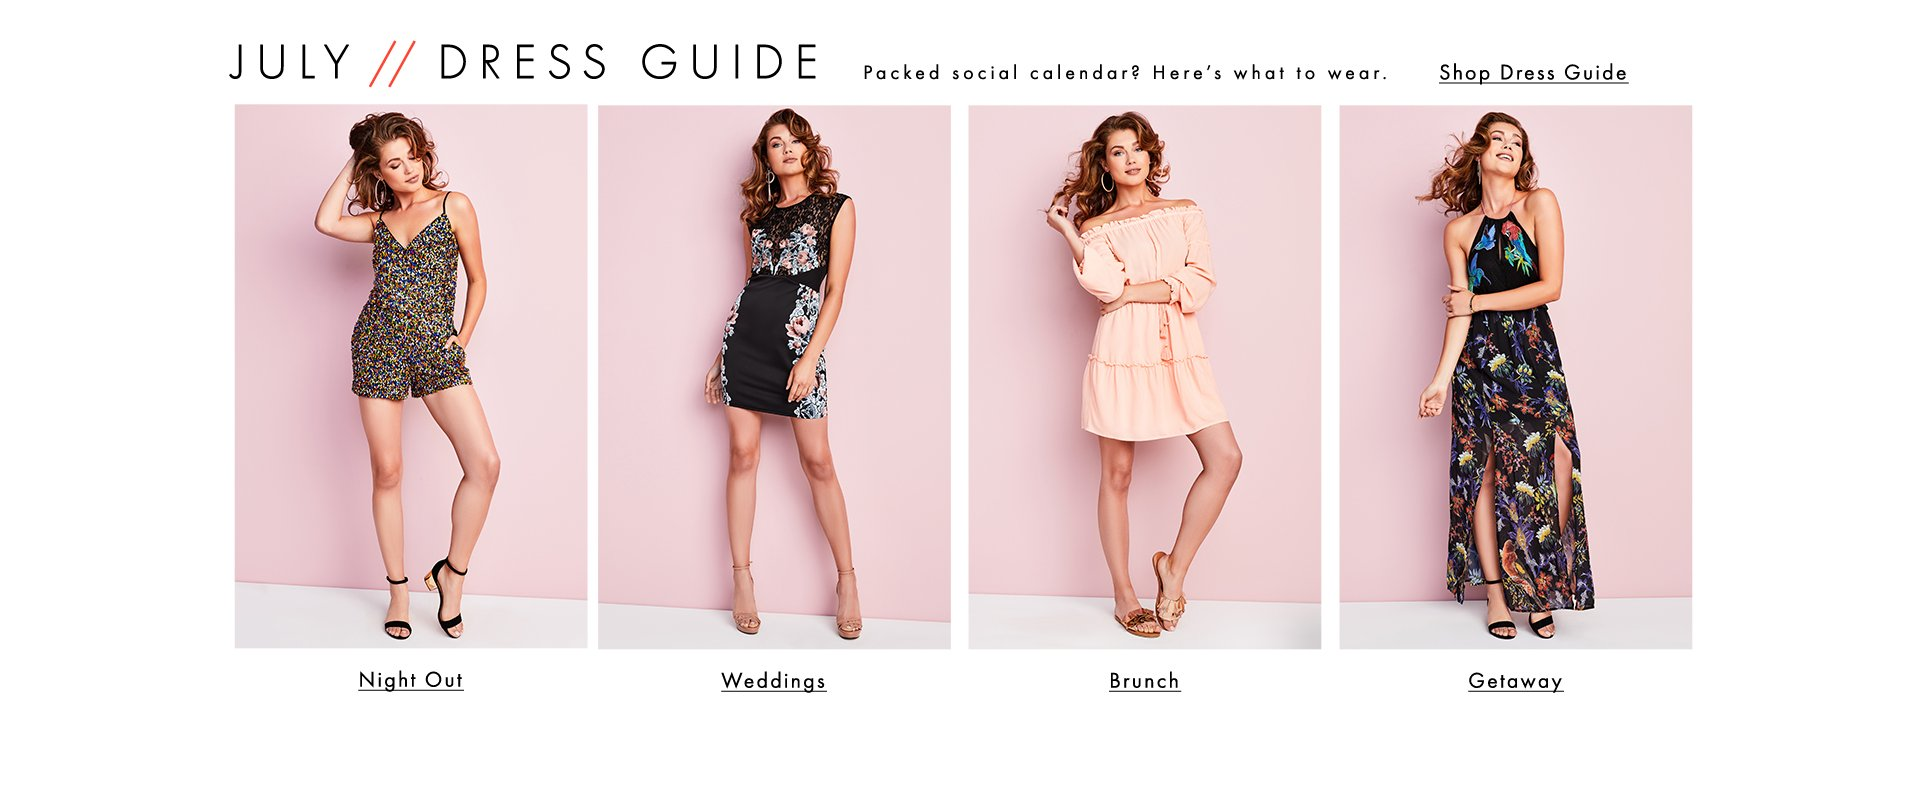 Shop Dress Guide